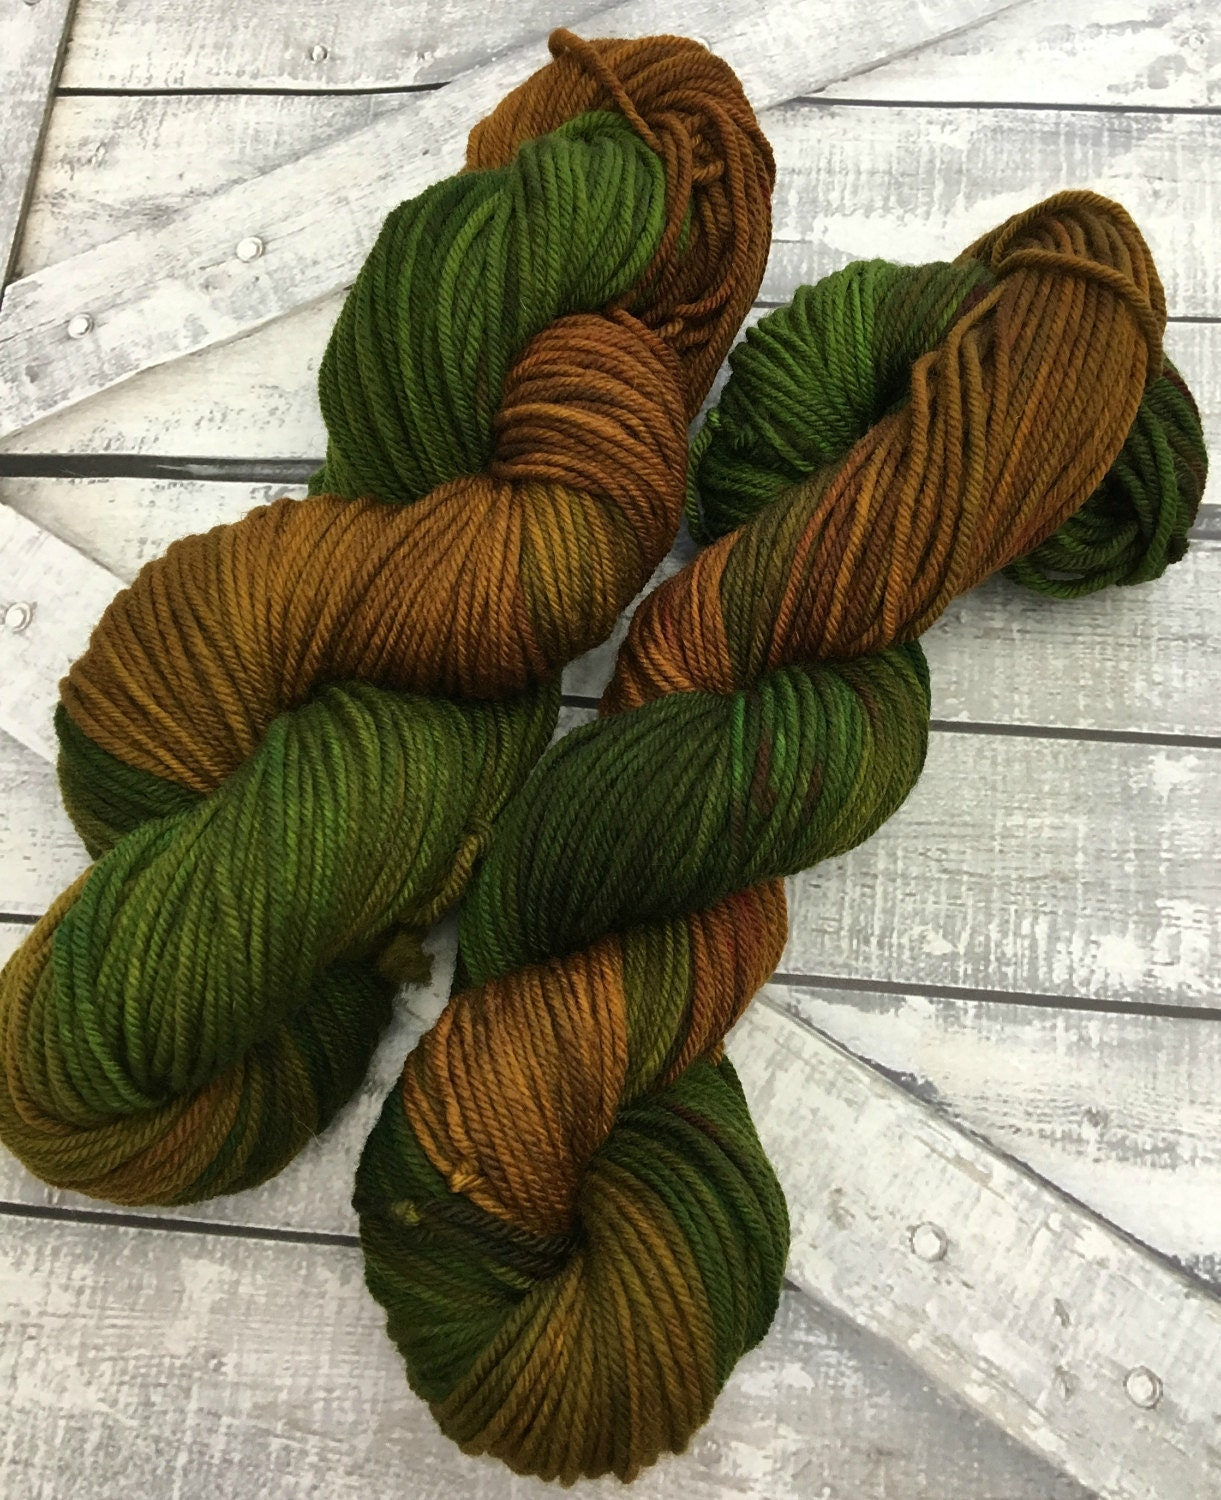 Hand Dyed Yarn - The Haunted Forest of Oz,Spike Base,Worsted Weight,4 ply,100 Superwash Merino,100 grams,indie dyed yarn,The Wizard of Oz